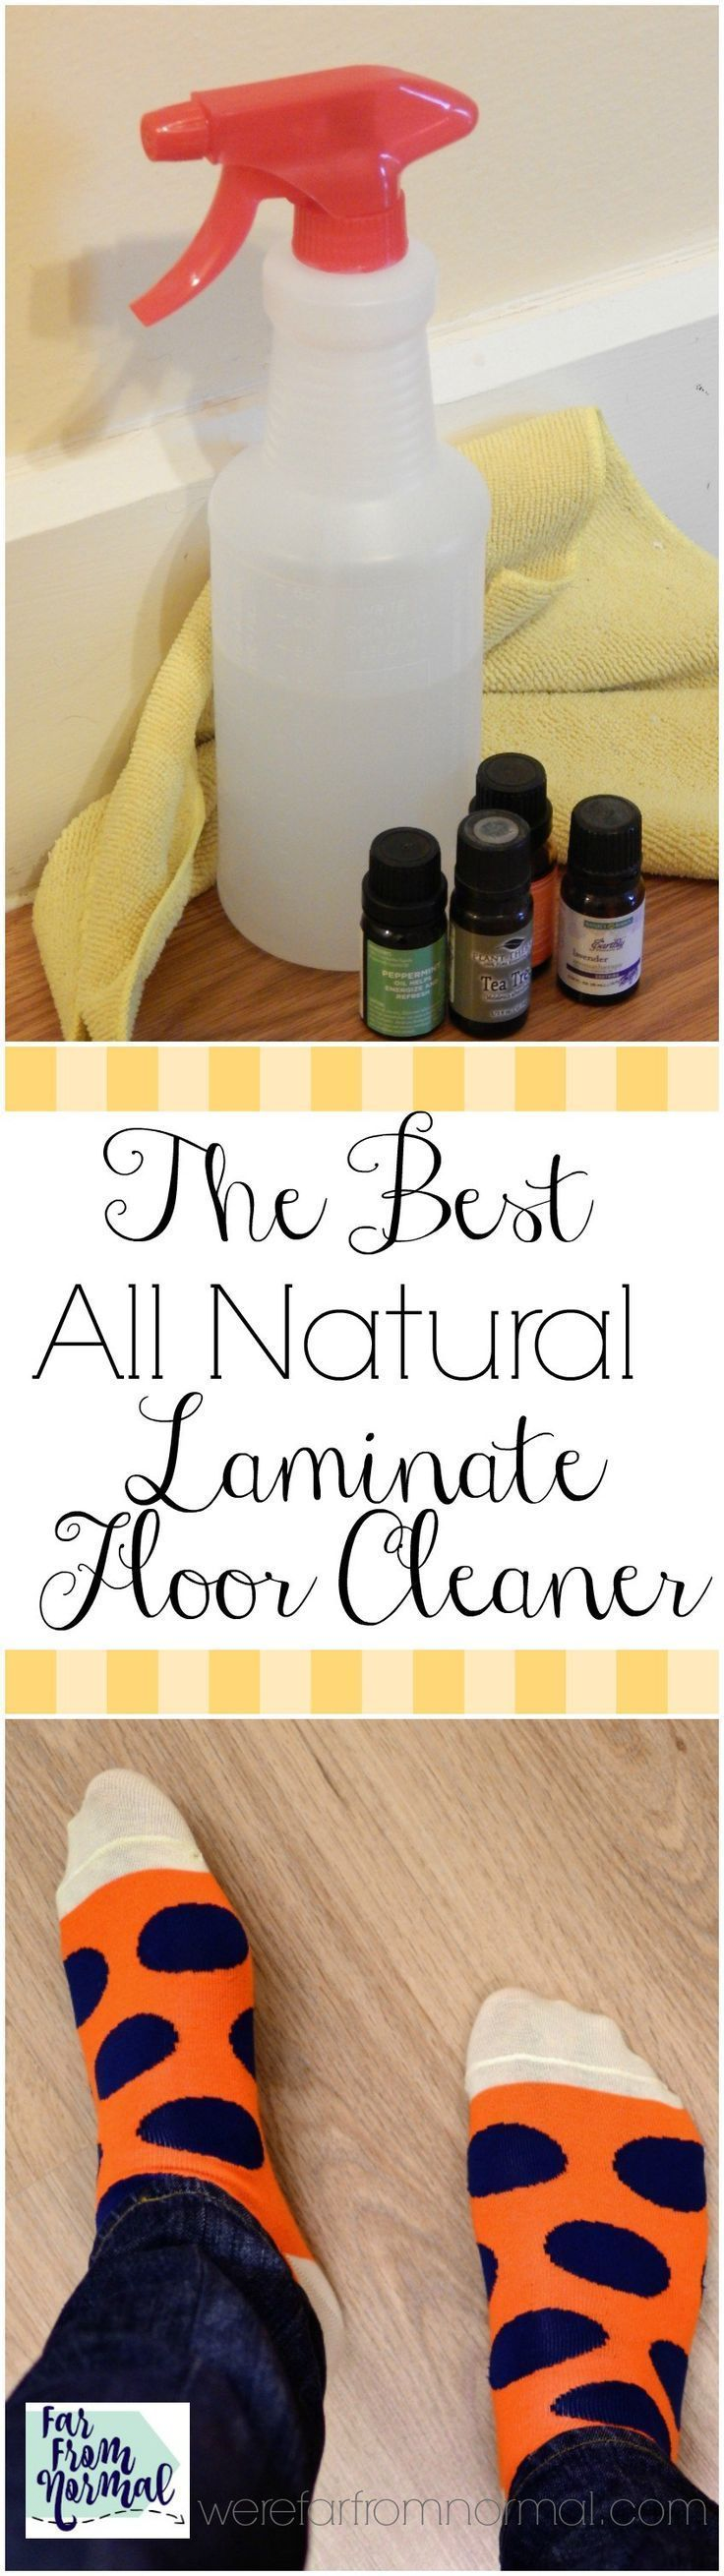 Kitchen Floor Cleaners 1000 Ideas About Laminate Floor Cleaning On Pinterest Diy